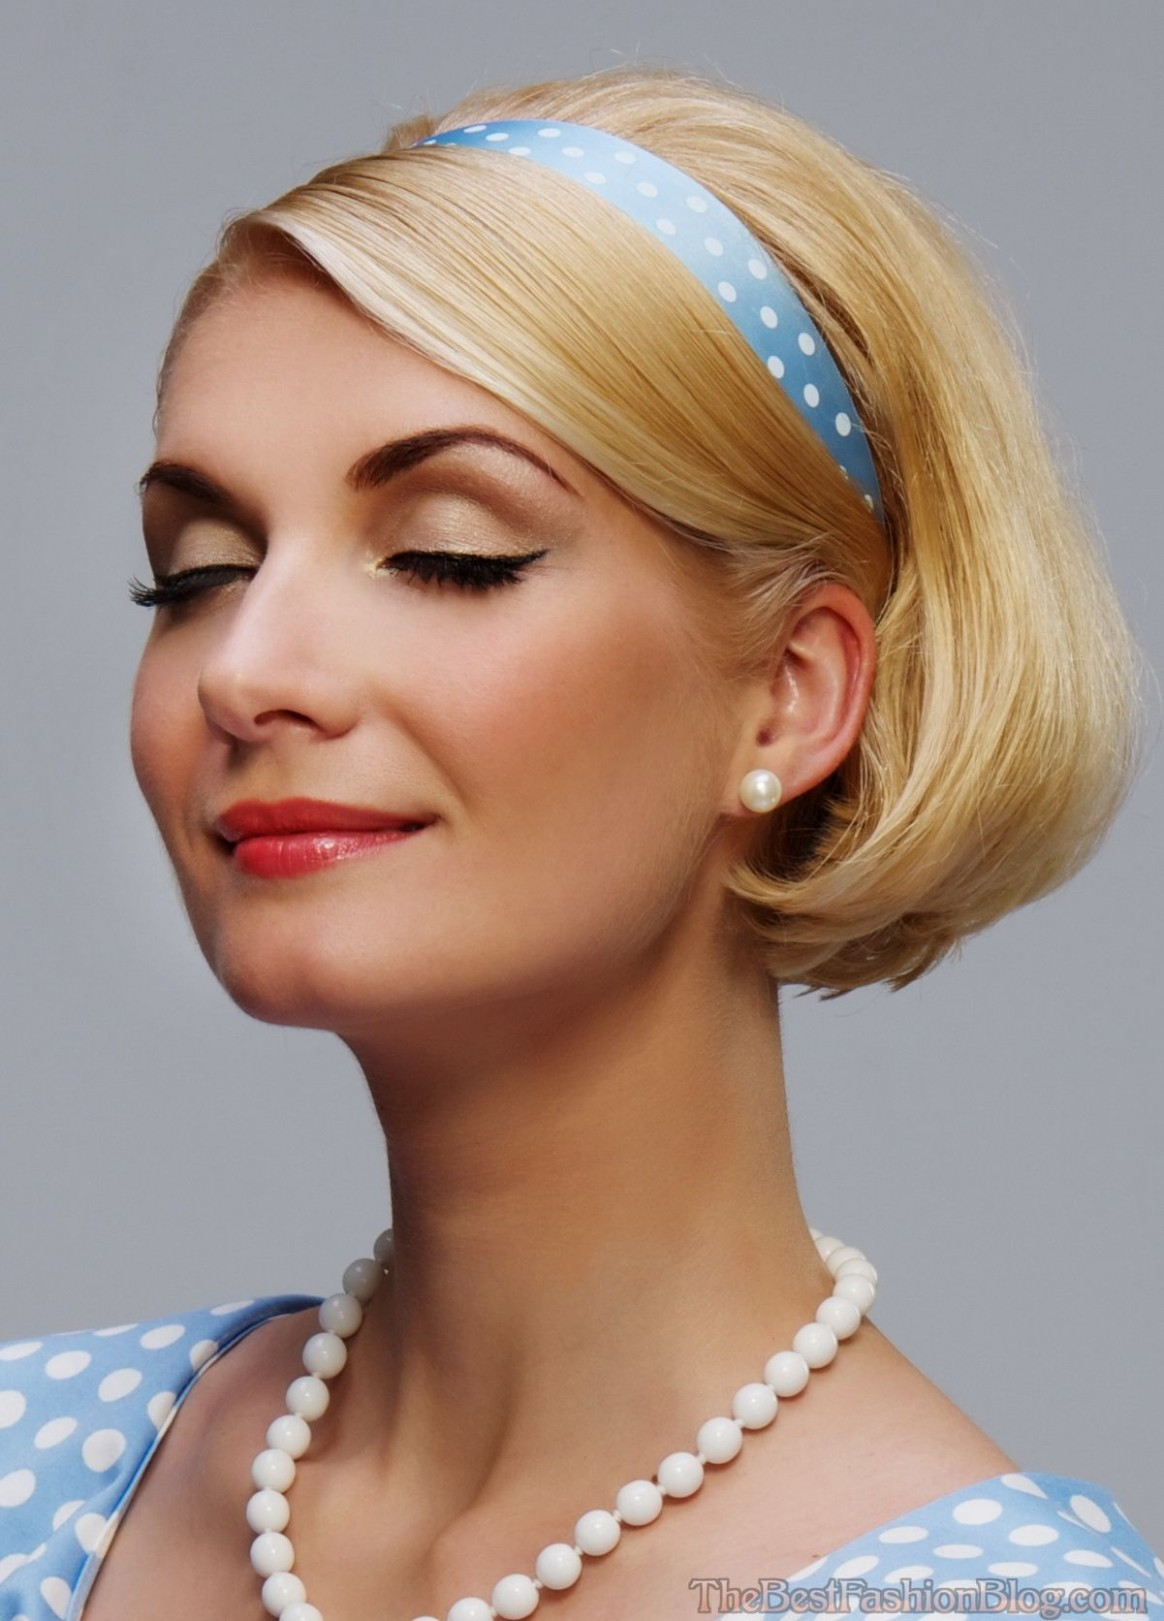 Retro Hairstyles For Women Hairstylo Easy Vintage Hairstyles Retro Hairstyle For Short Hair